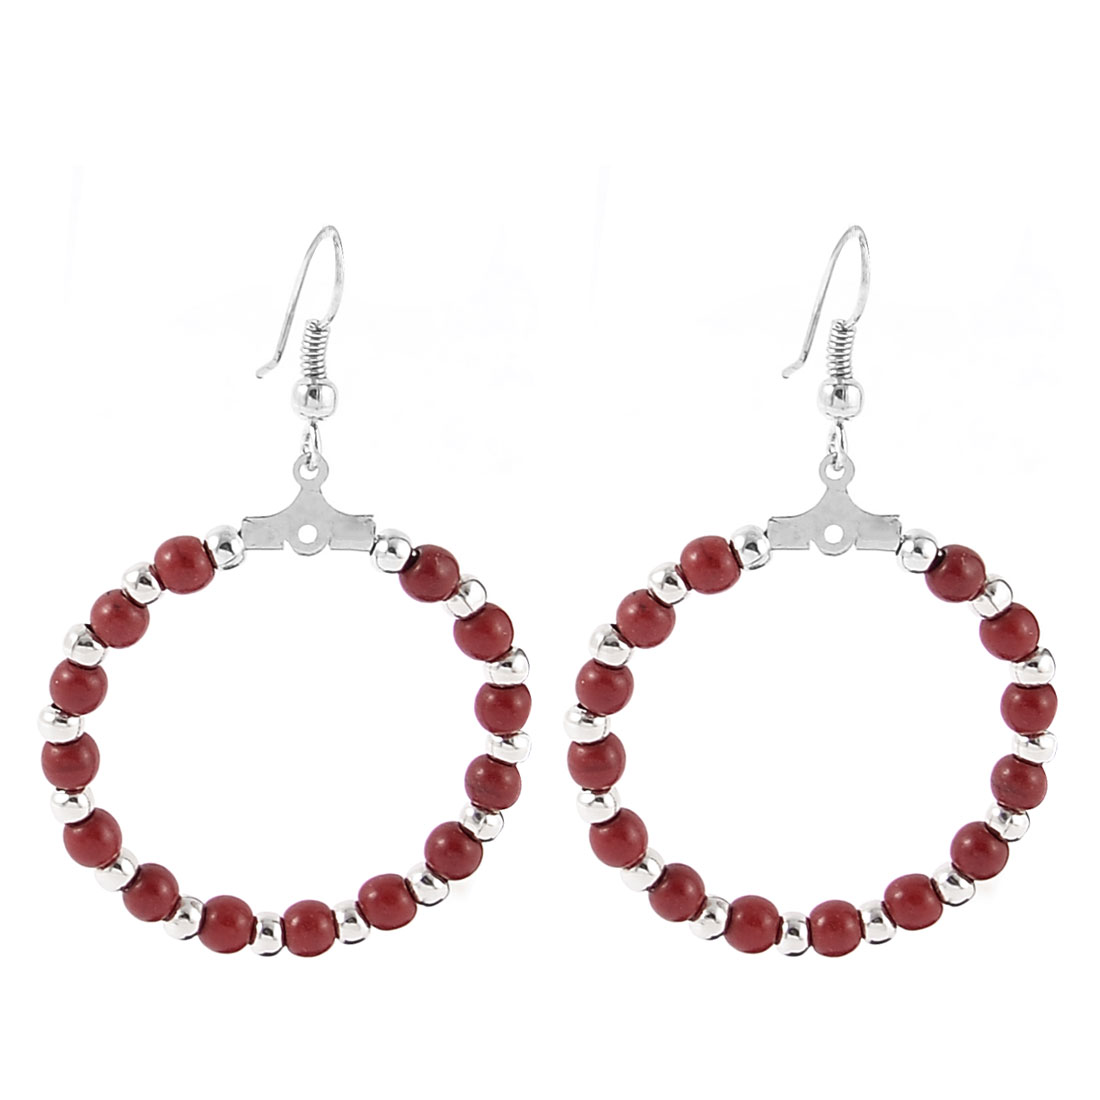 Lady Women Fashion Jewelry Circle Beads Dangle Earrings Pair Silver Tone Red